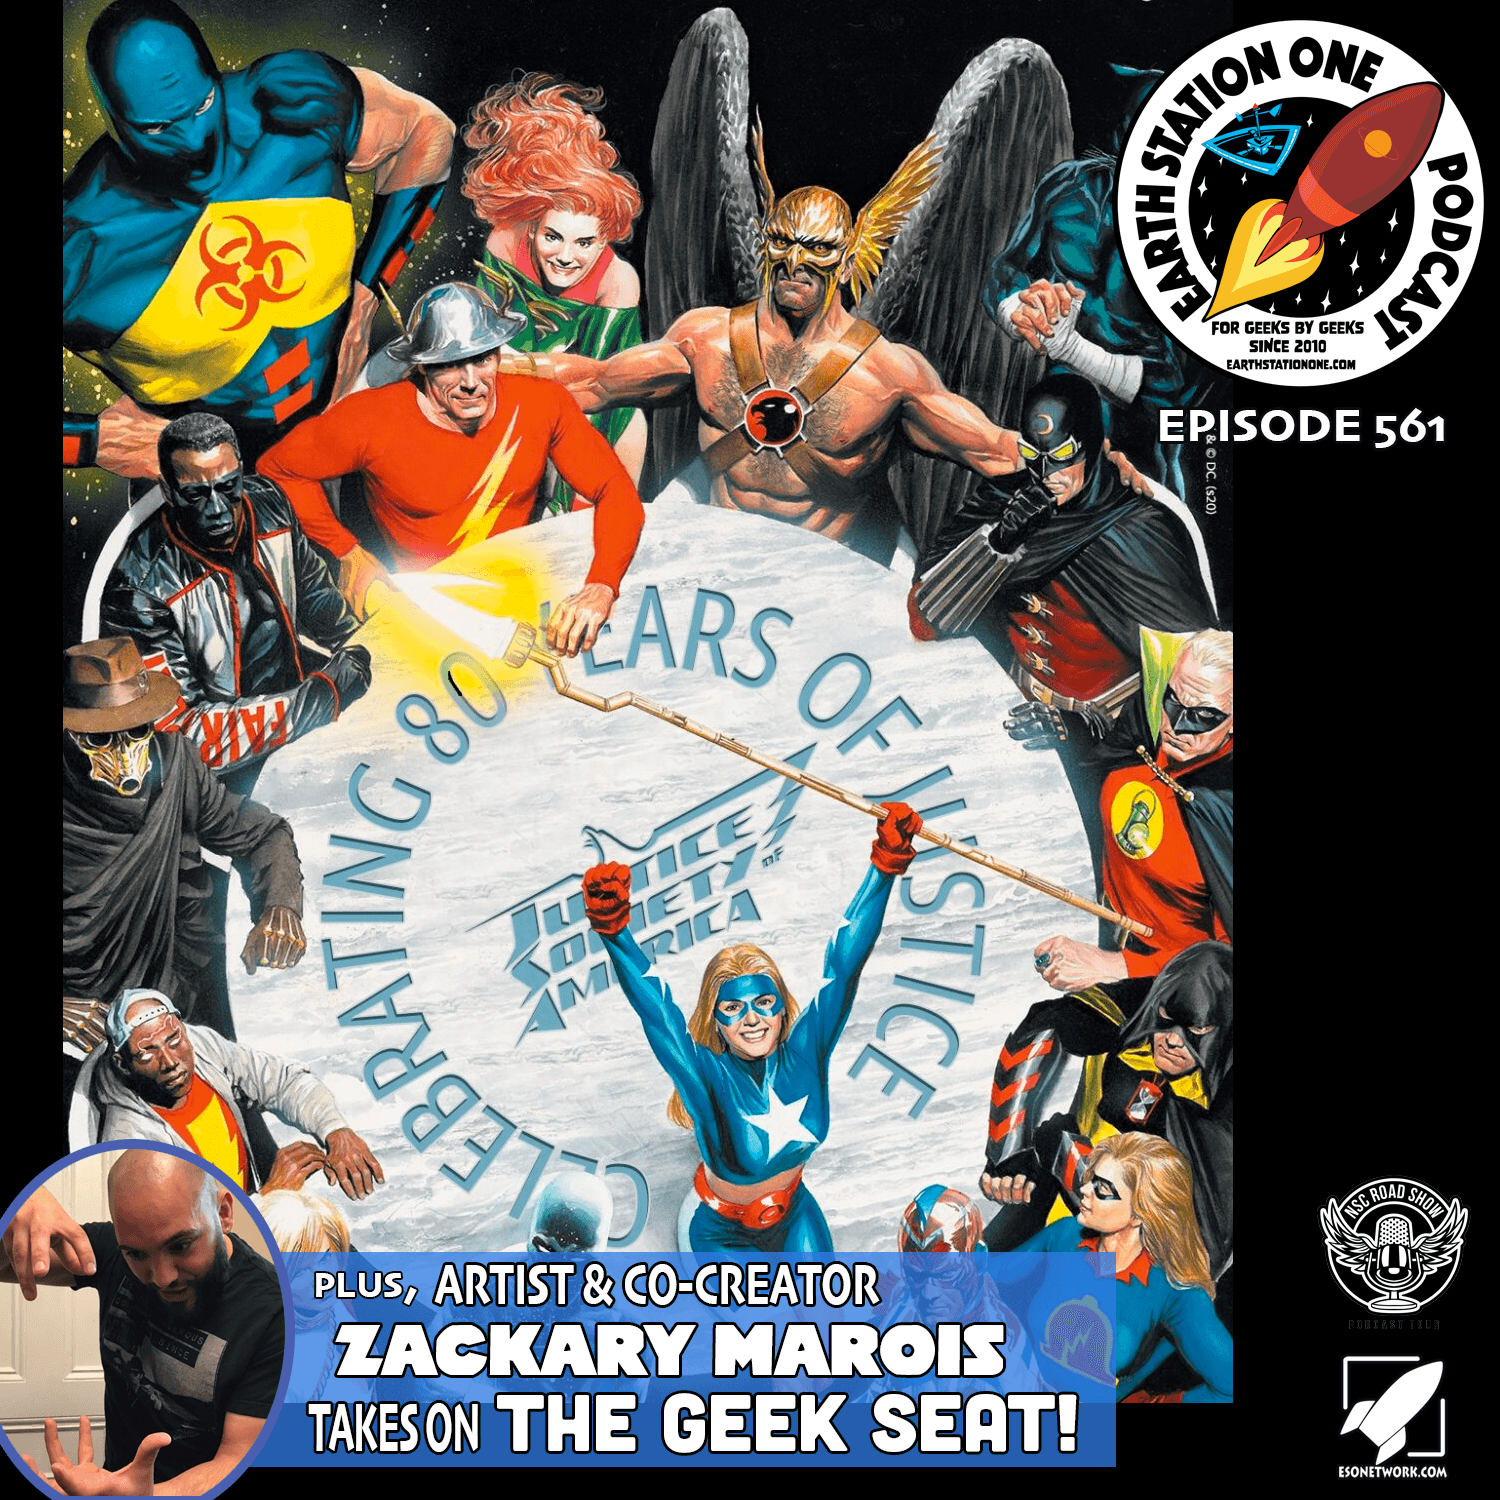 The Earth Station One Podcast Ep 561